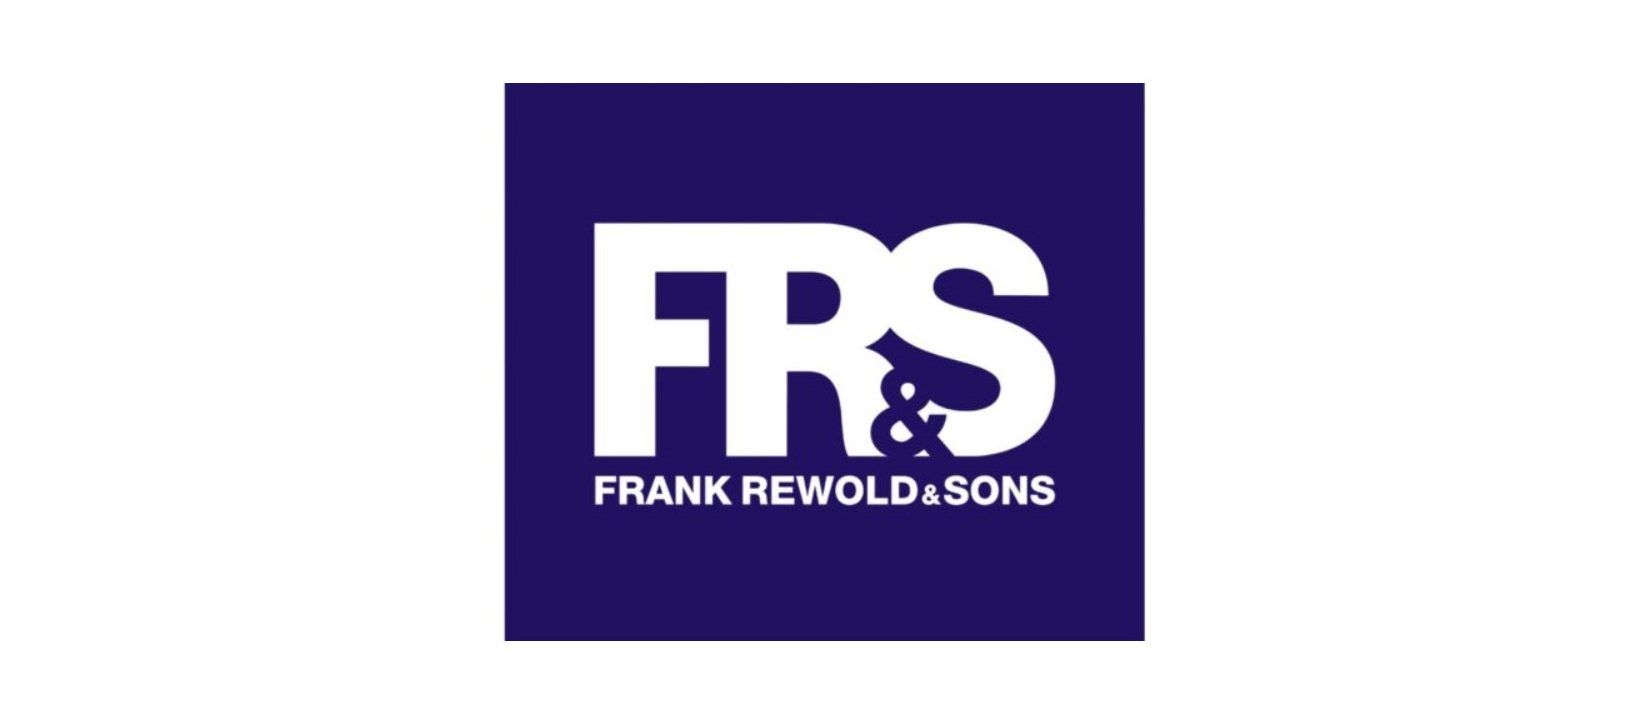 Frank Rewold & Sons